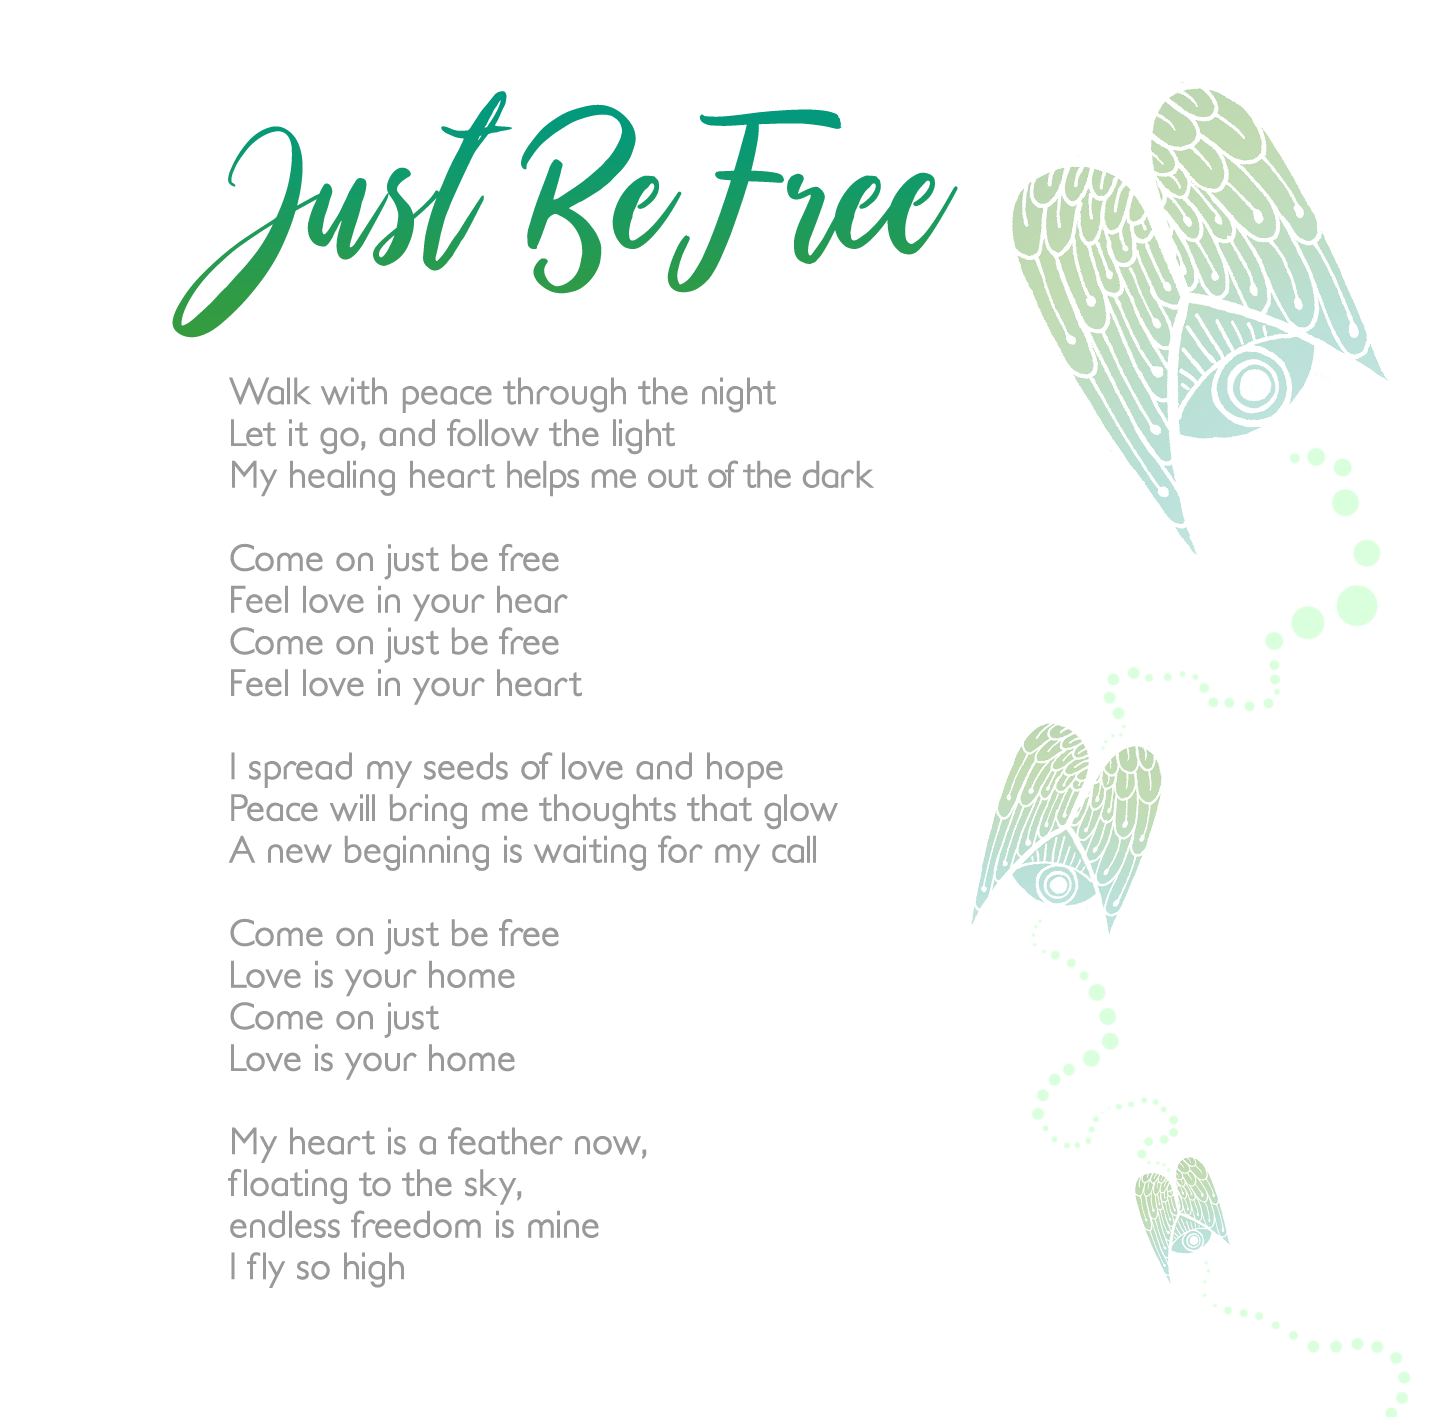 Just Be Free- Musik text